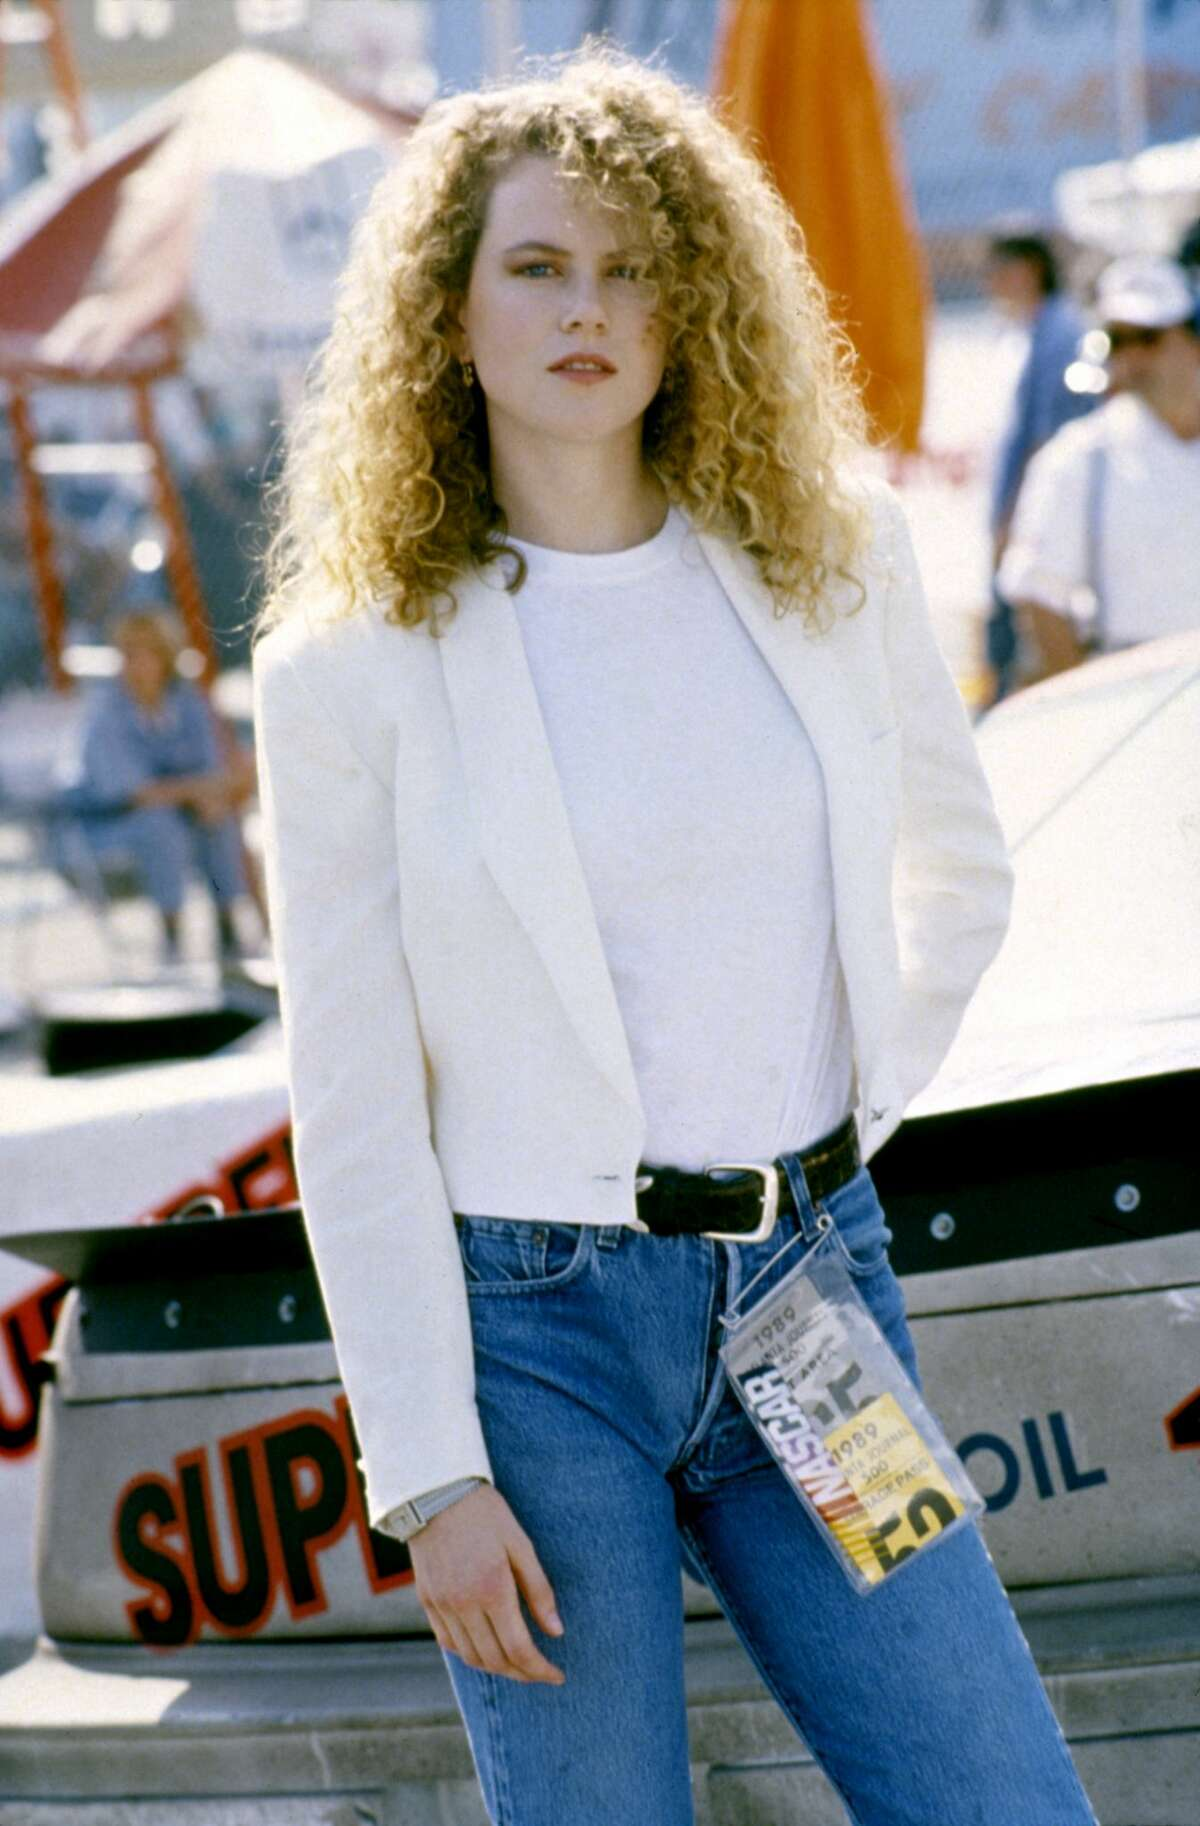 Australian actress Nicole Kidman in 1990 on the set of Days of Thunder, directed by Tony Scott.